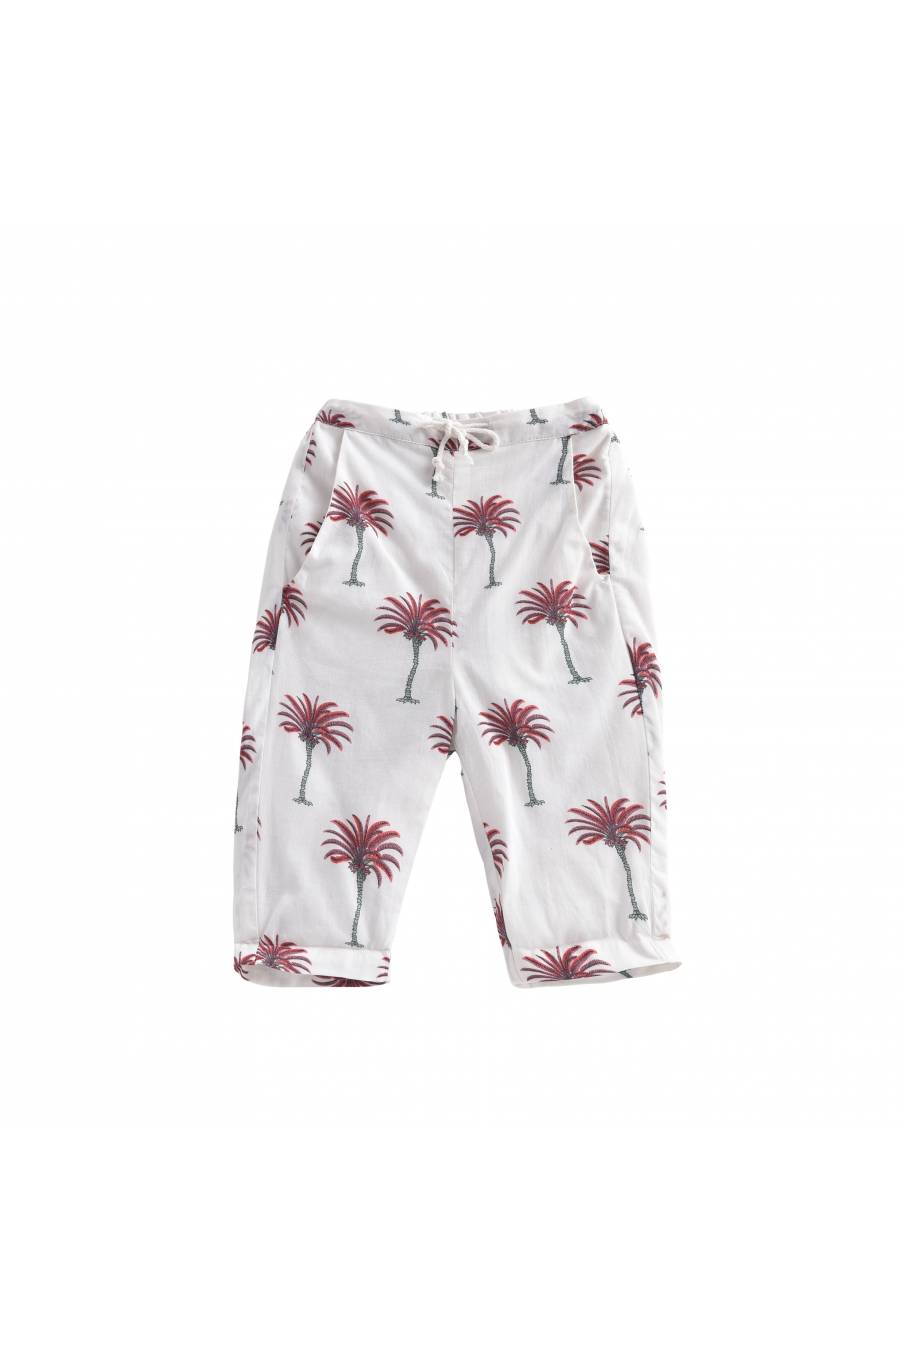 Pants Avani White Tropical